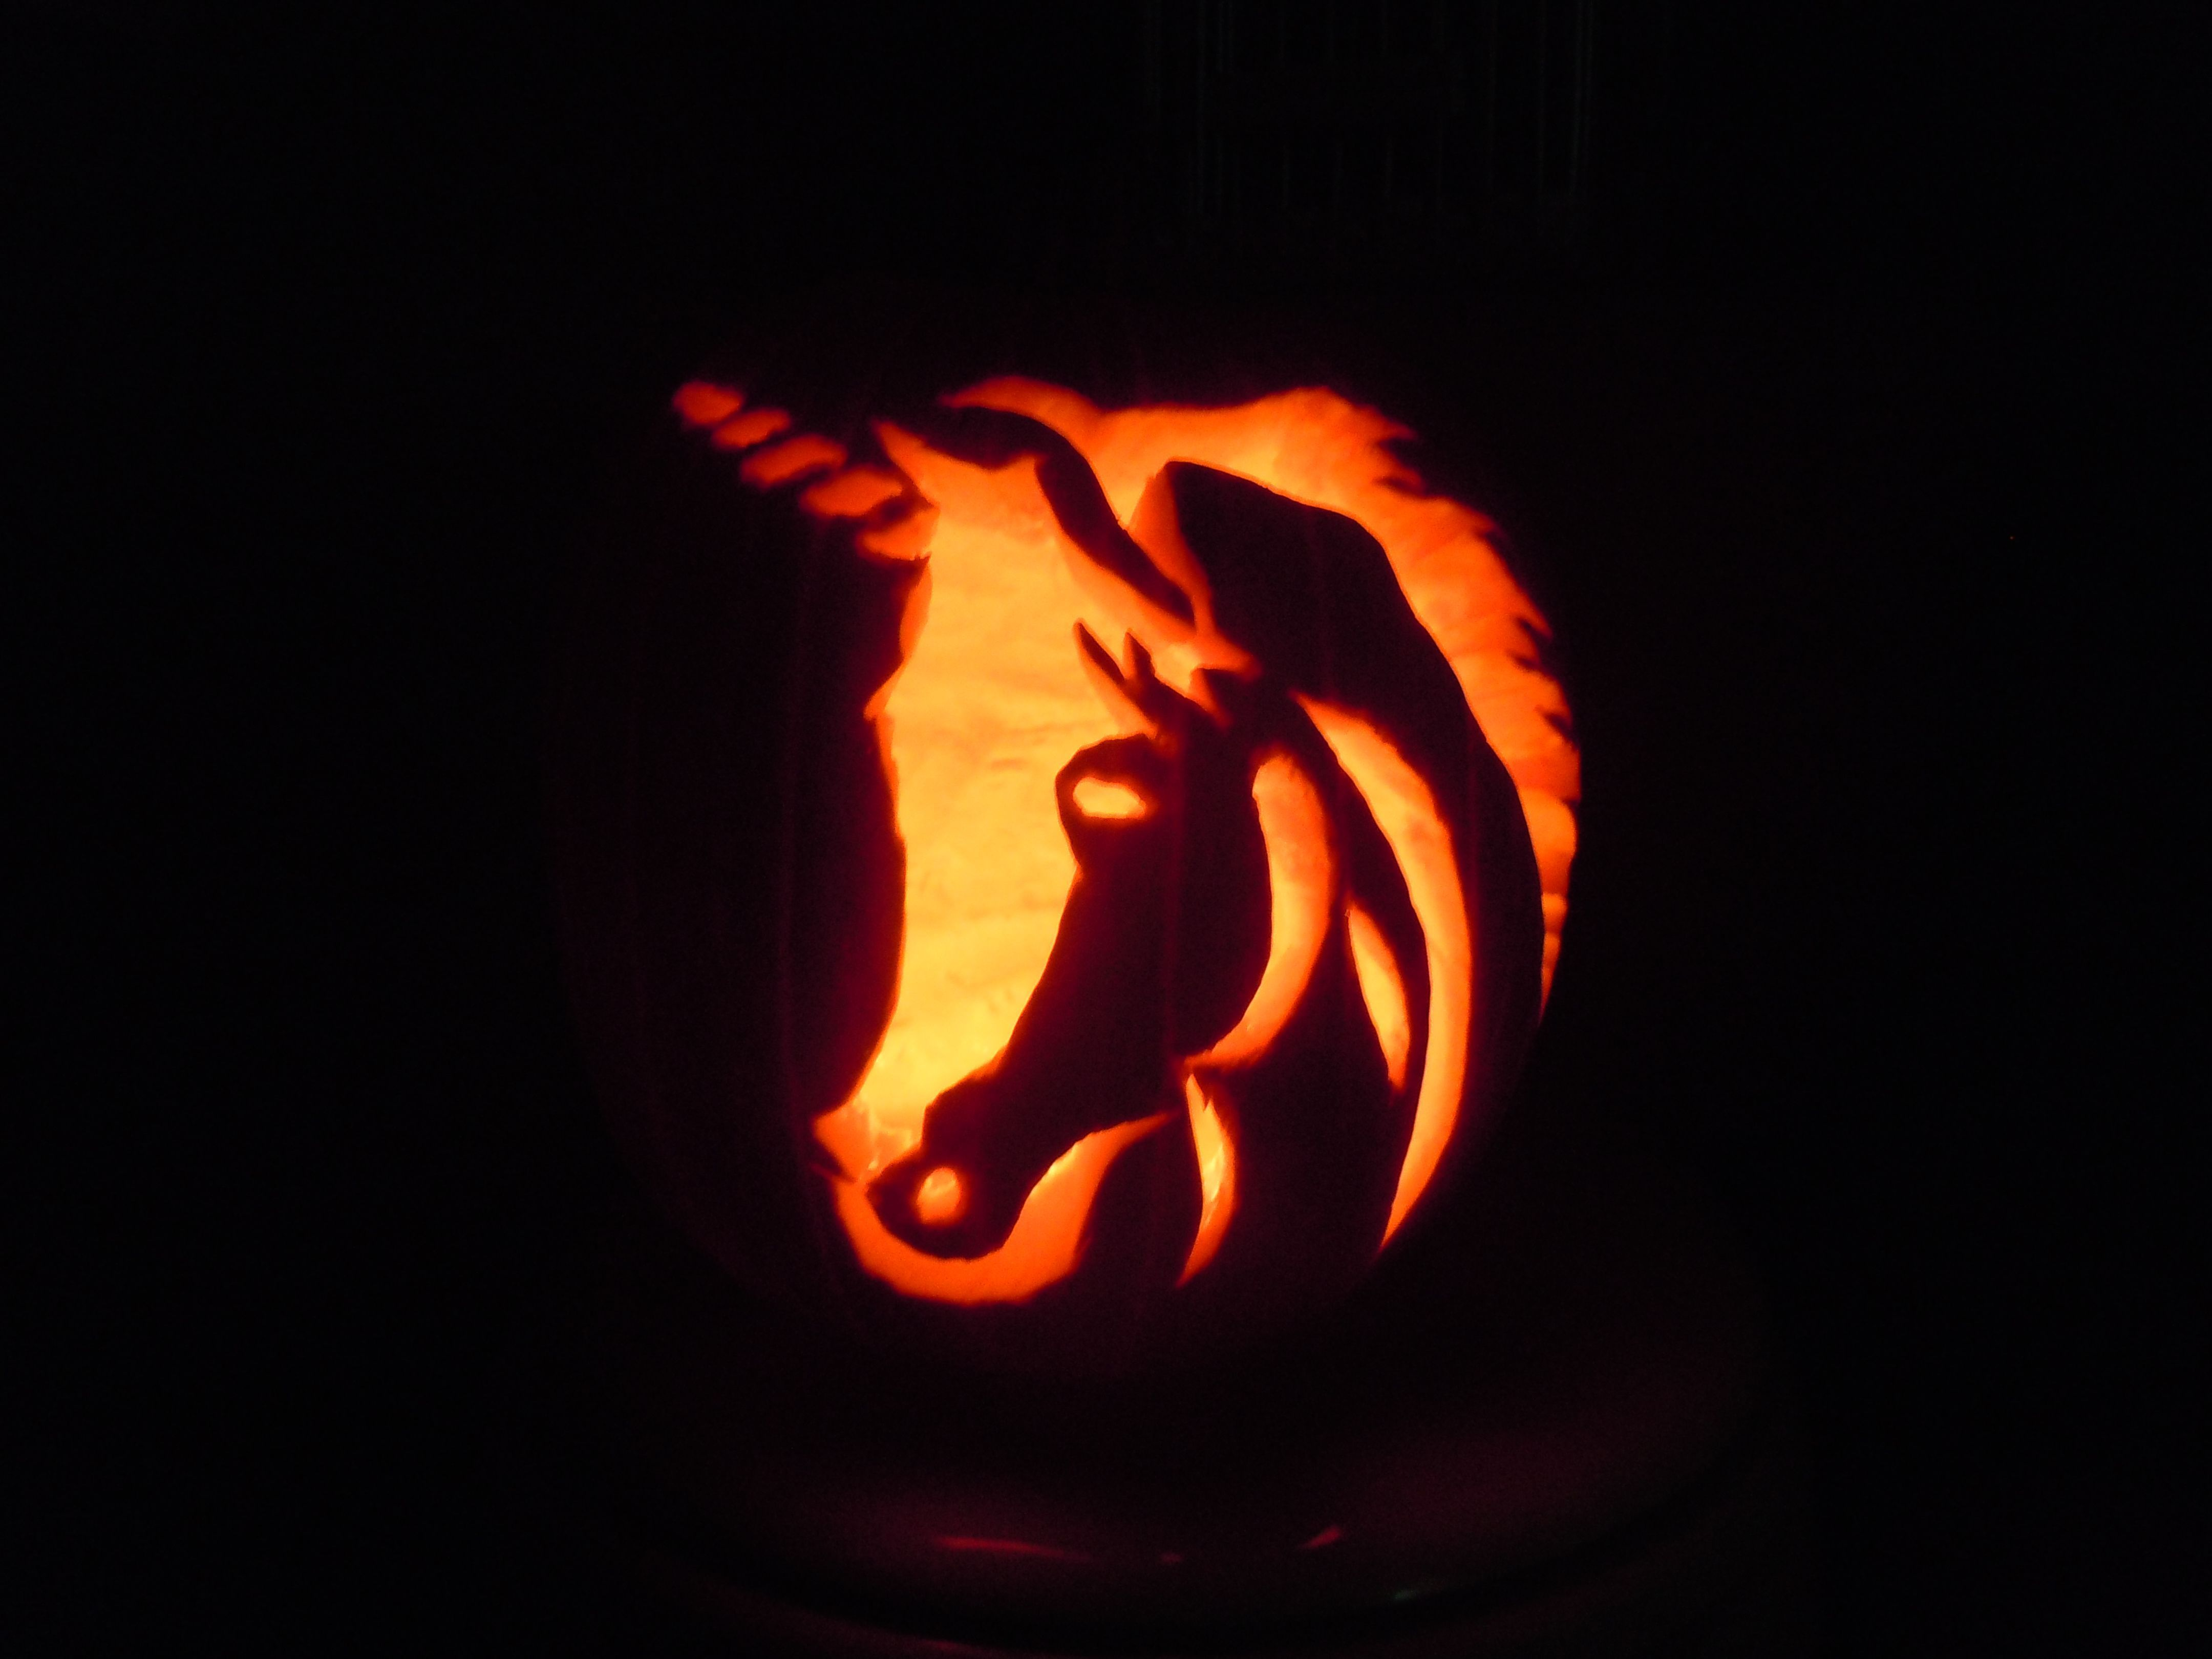 #carving #daughter #pumpkin #Unicorn #years Pumpkin Carving of a unicorn my daughter did 2 years ago - #pumkincarvingdesigns #carving #daughter #pumpkin #Unicorn #years Pumpkin Carving of a unicorn my daughter did 2 years ago - #pumpkincarvingstencils